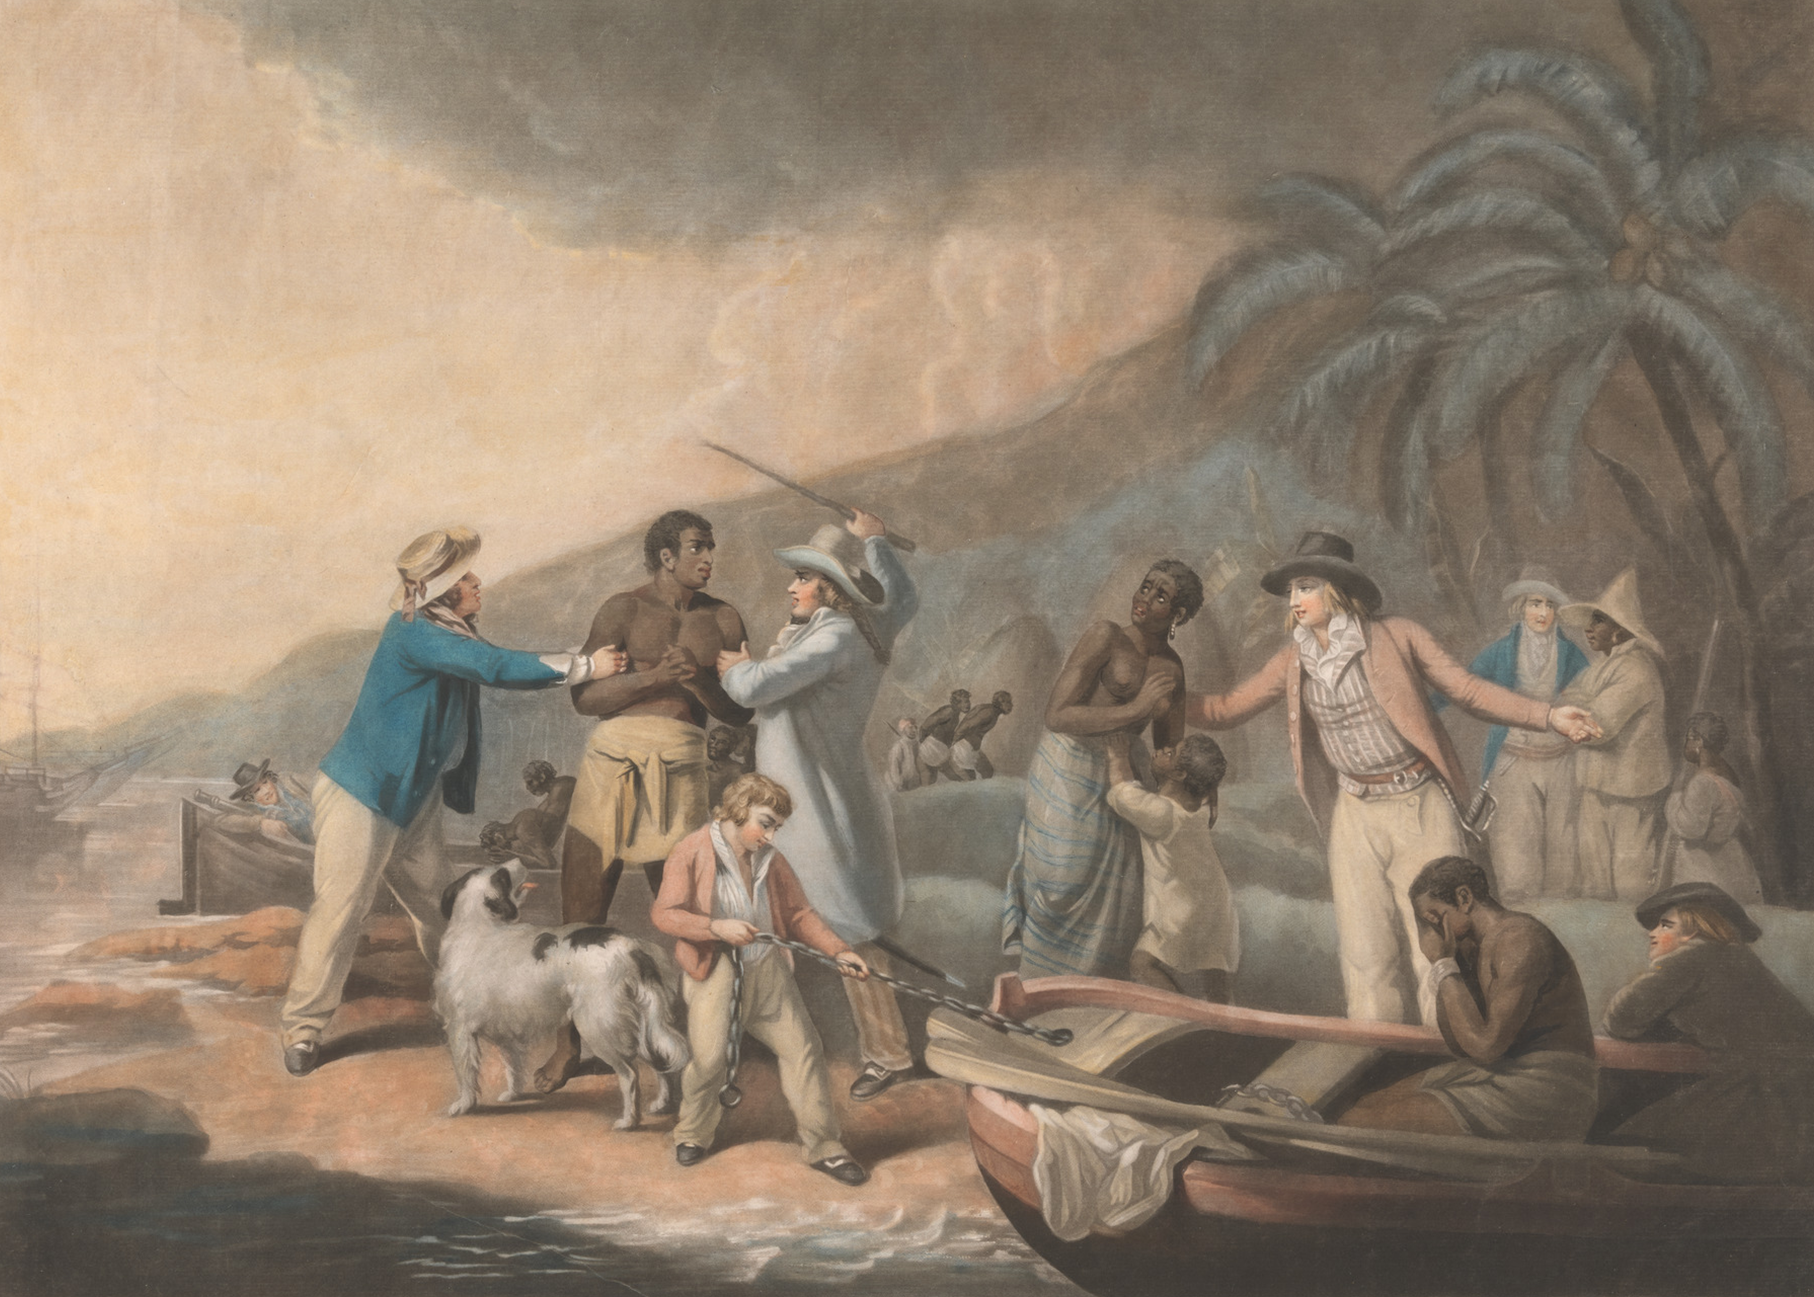 1792, Slave Trade - Original Author: George Morland, artist; John Raphael Smith, engraver (Courtesy: Yale Center for British Art, Paul Mellon Collection)